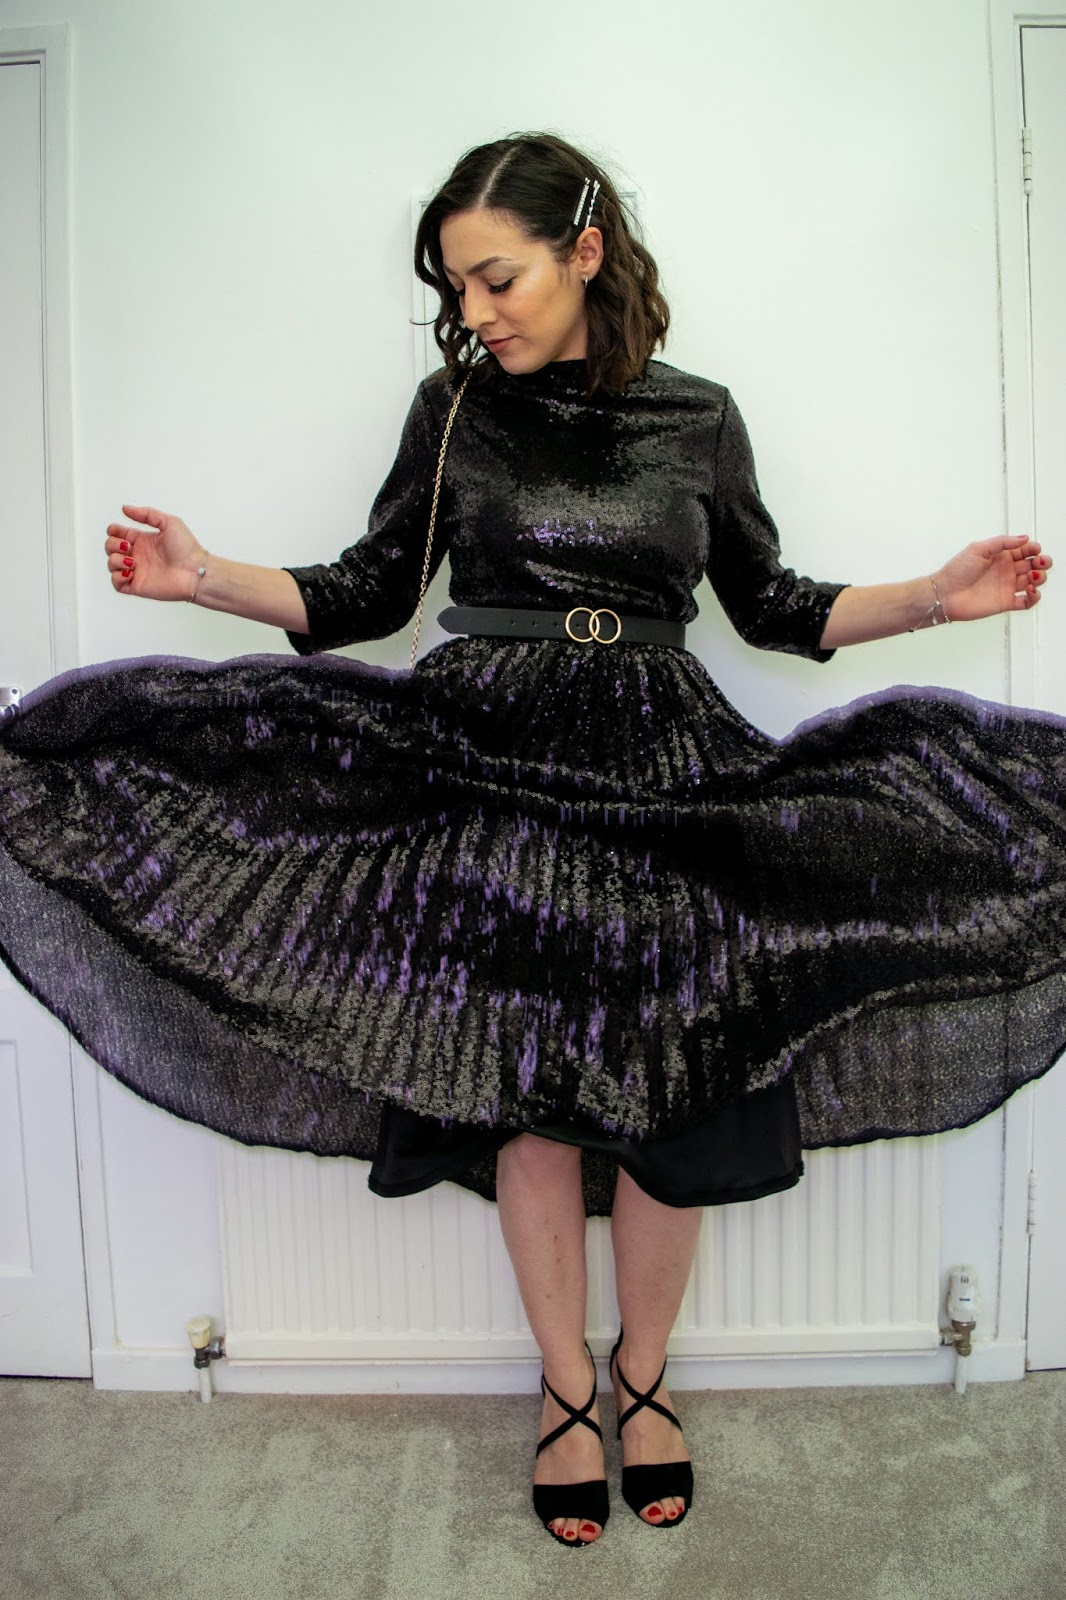 I'm standing with my arms slightly out wearing a black sequin pleated dress that has been caught moving mid-air.